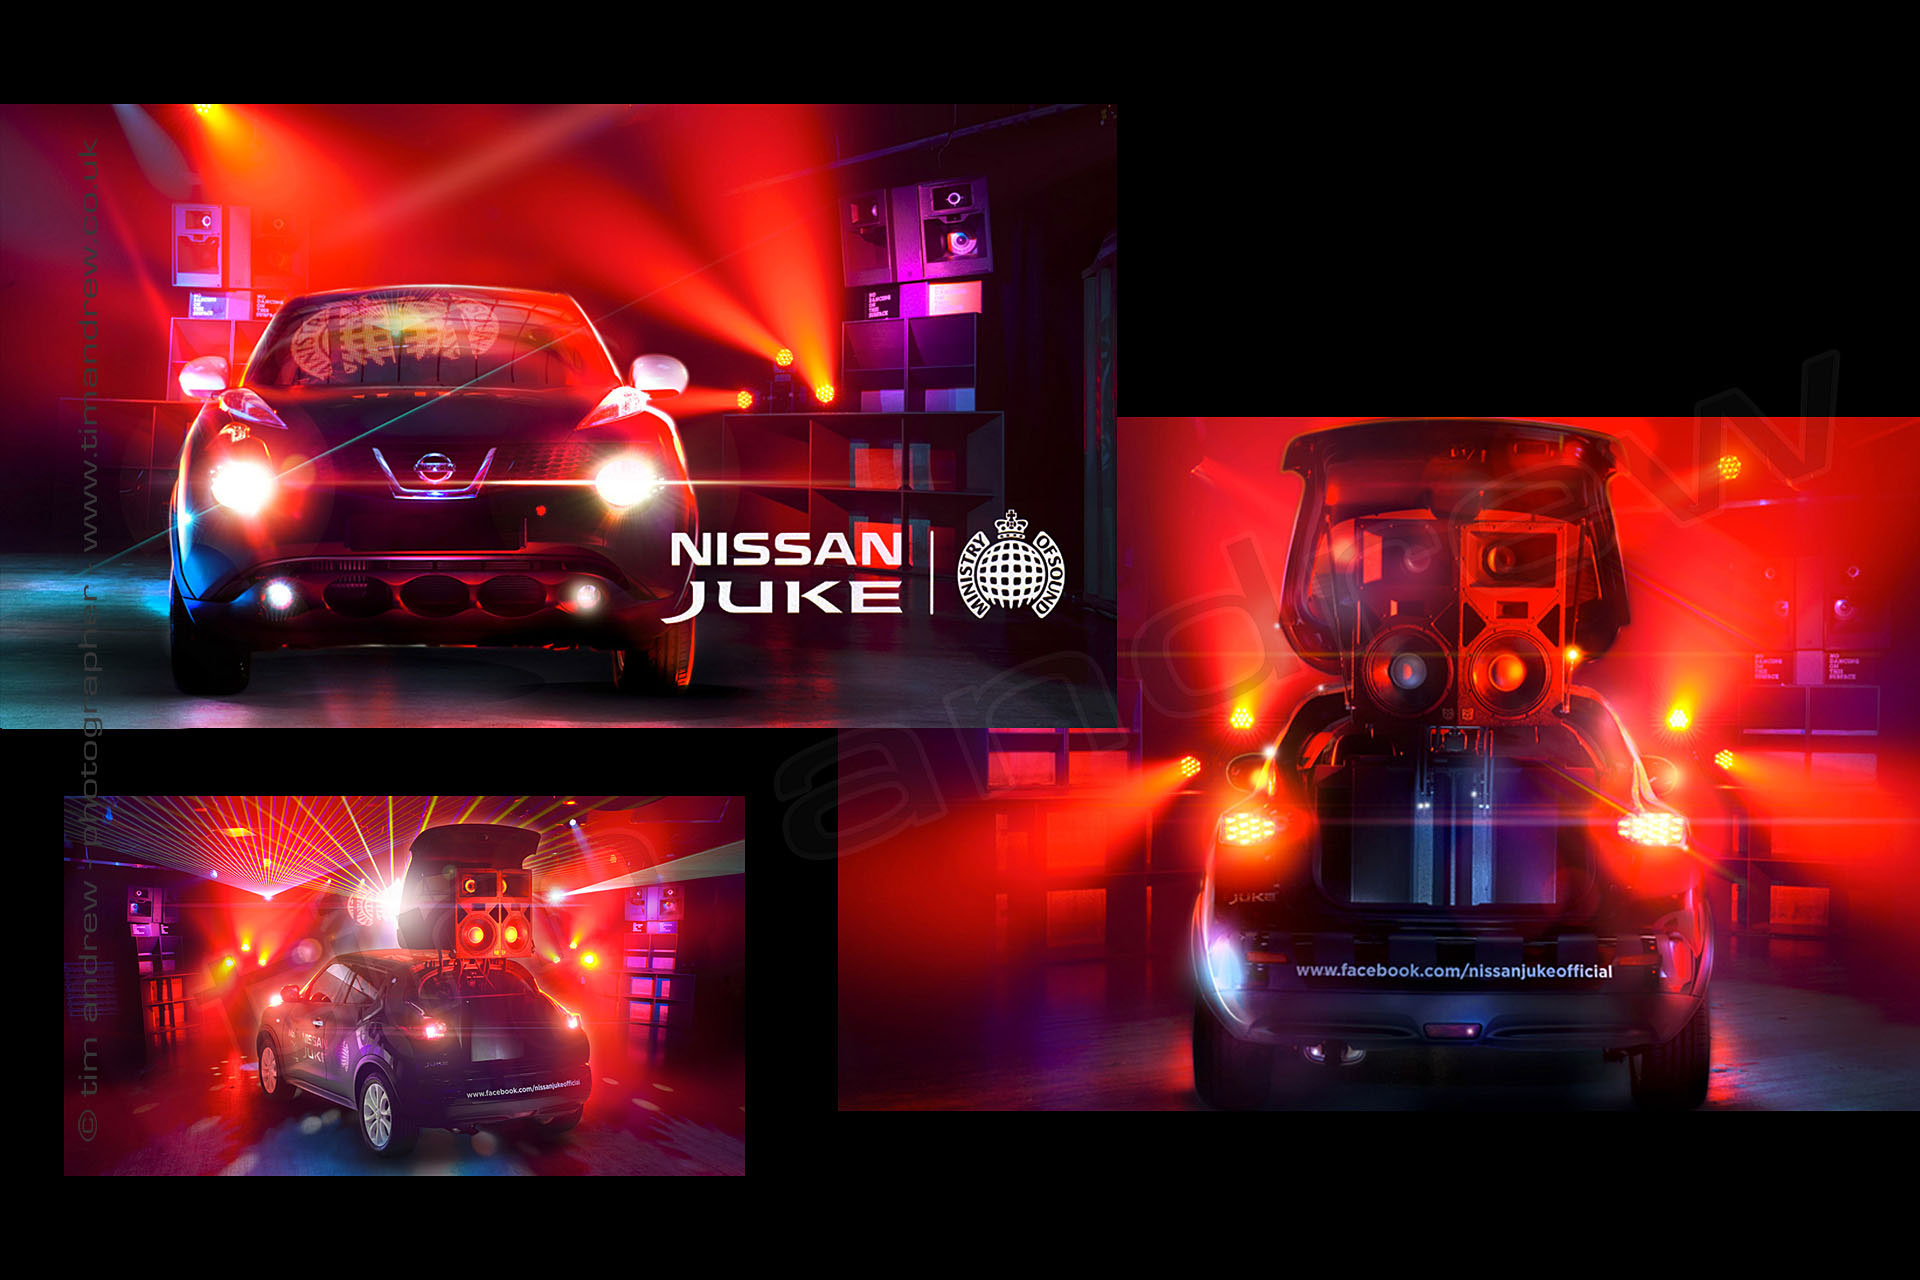 Nissan Juke, Ministry of Sound special edition